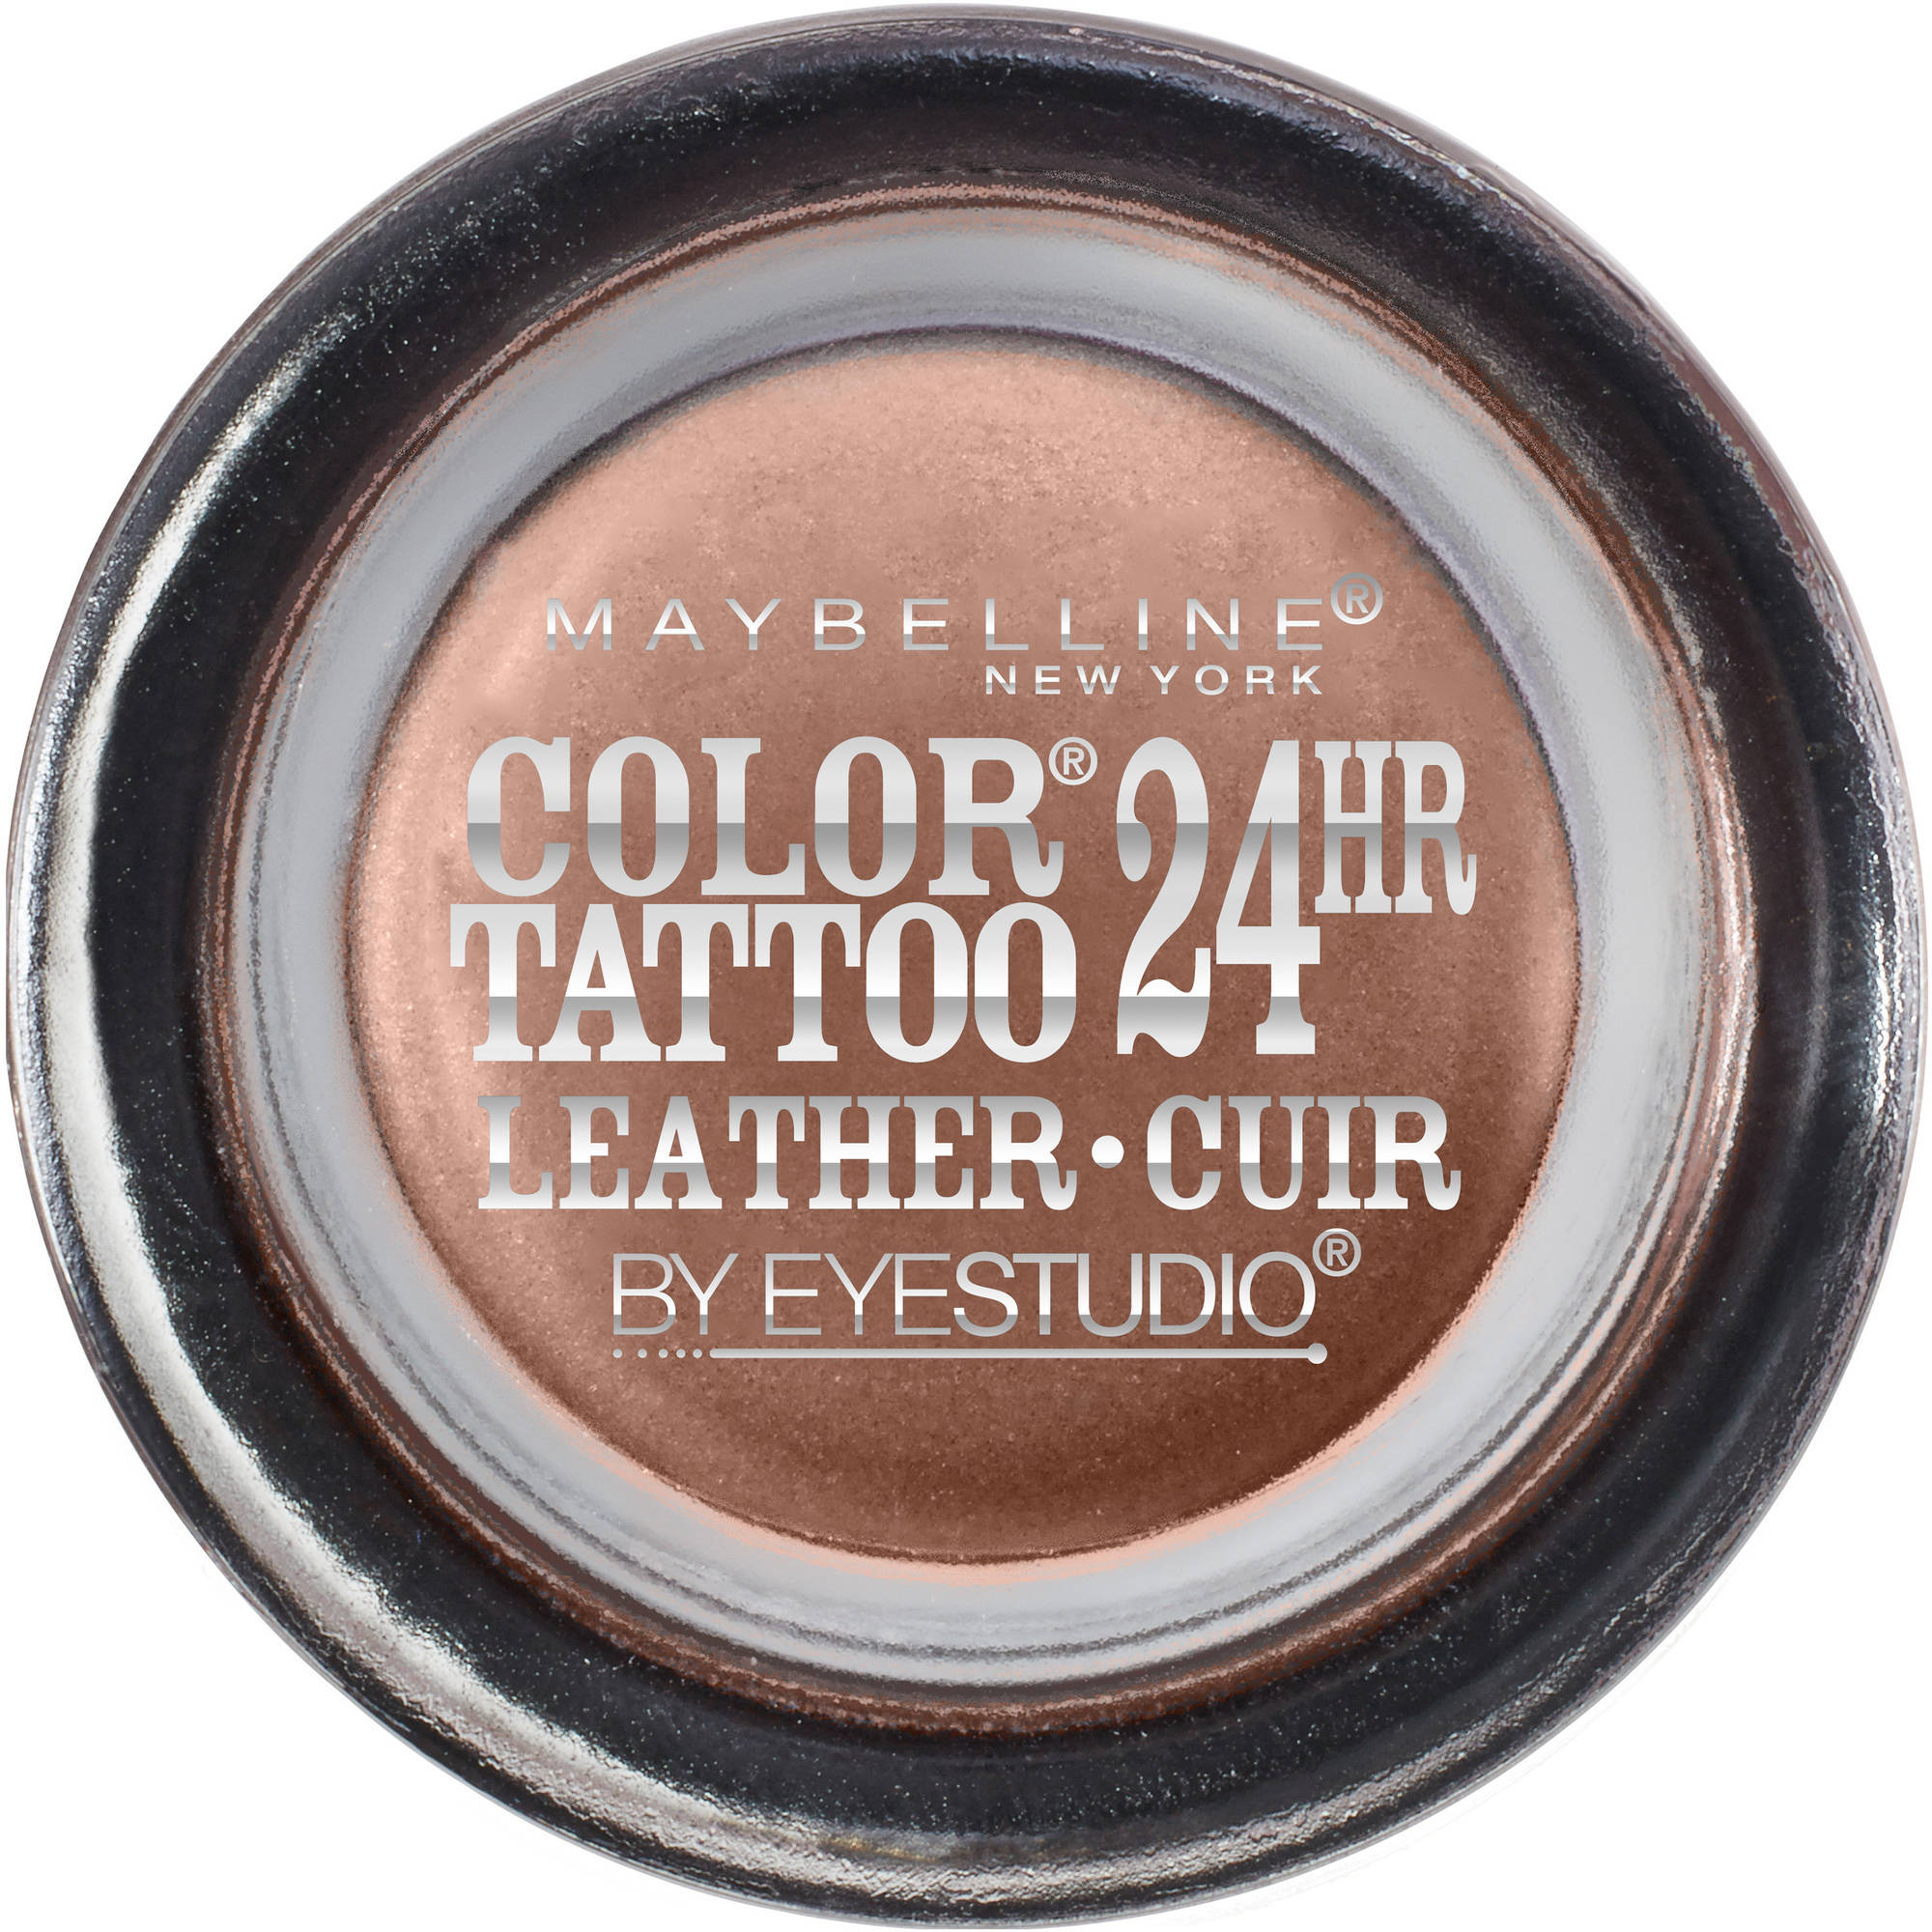 Maybelline Eyestudio ColorTattoo Leather 24HR Cream Eyeshadow, Creamy Beige, 0.14 Oz